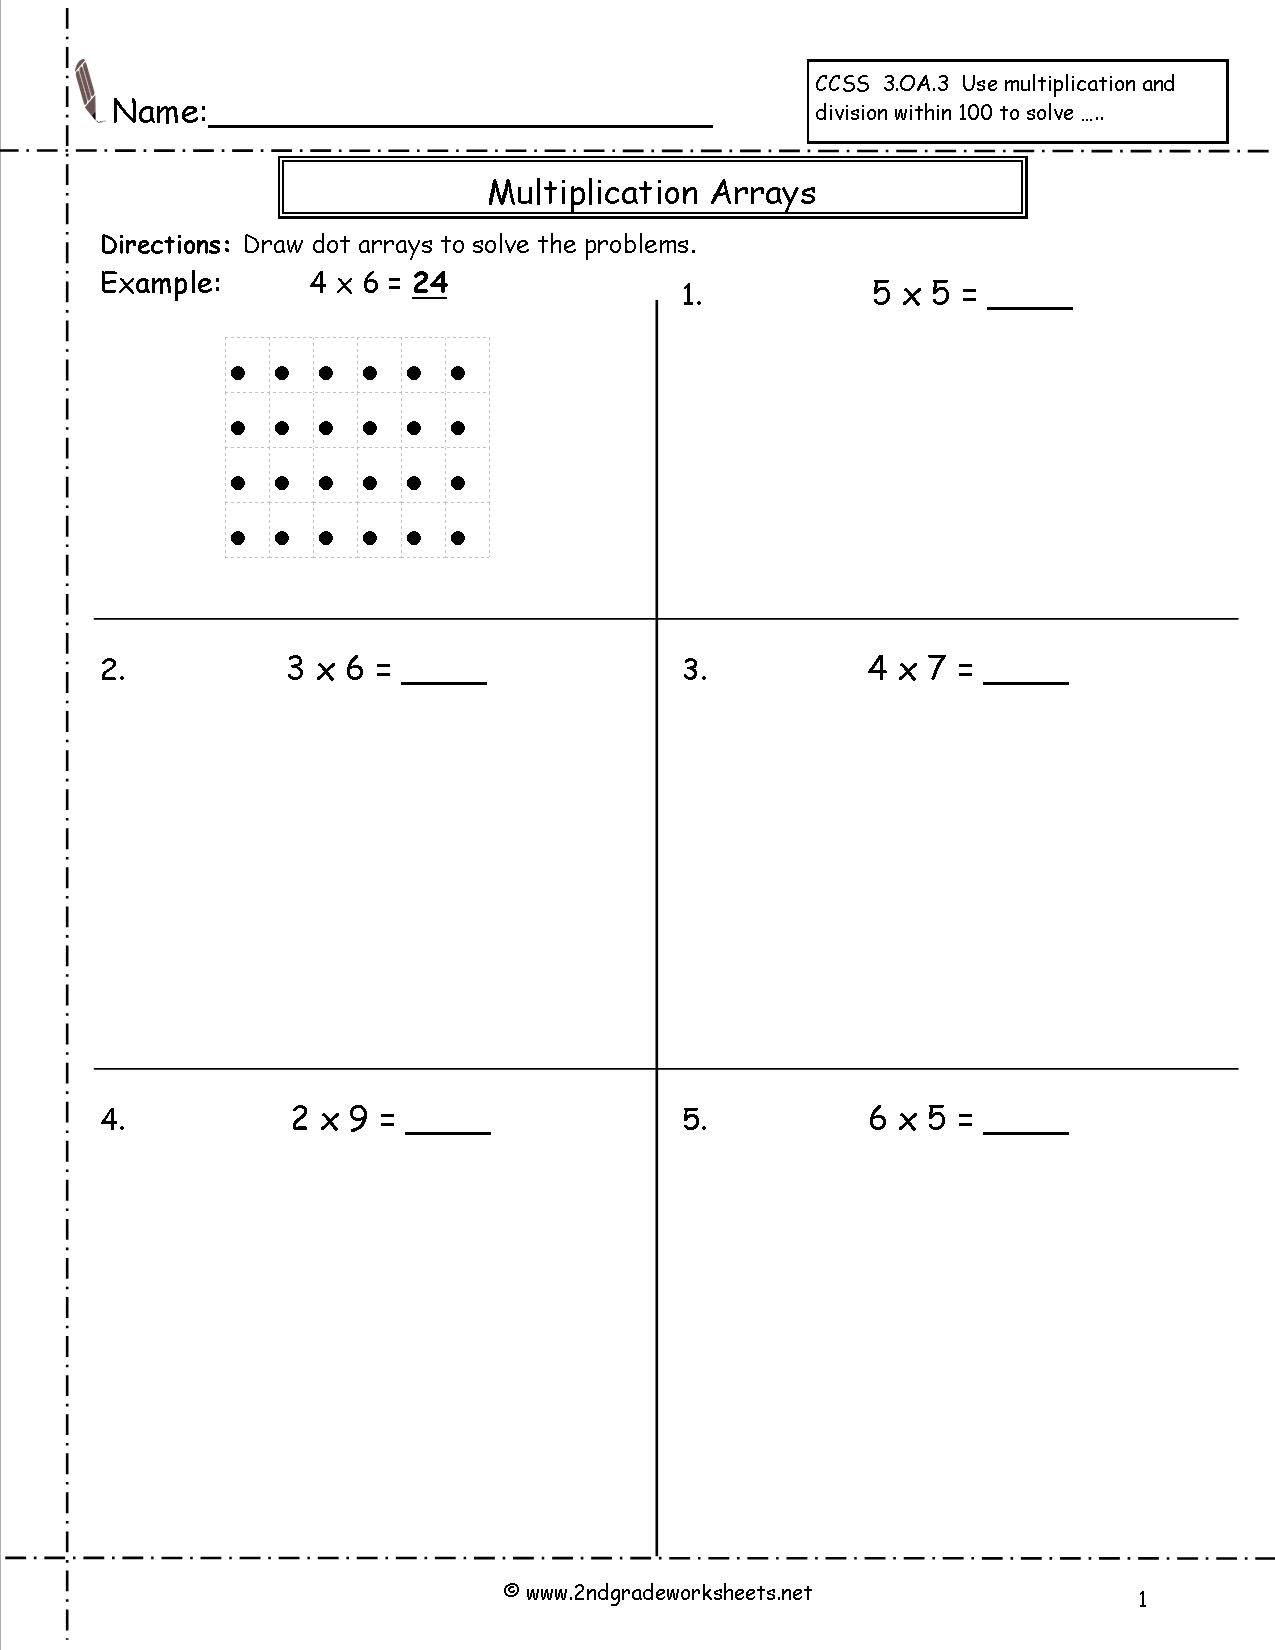 multiplication array worksheets  temporary board  pinterest  multiplication array worksheets